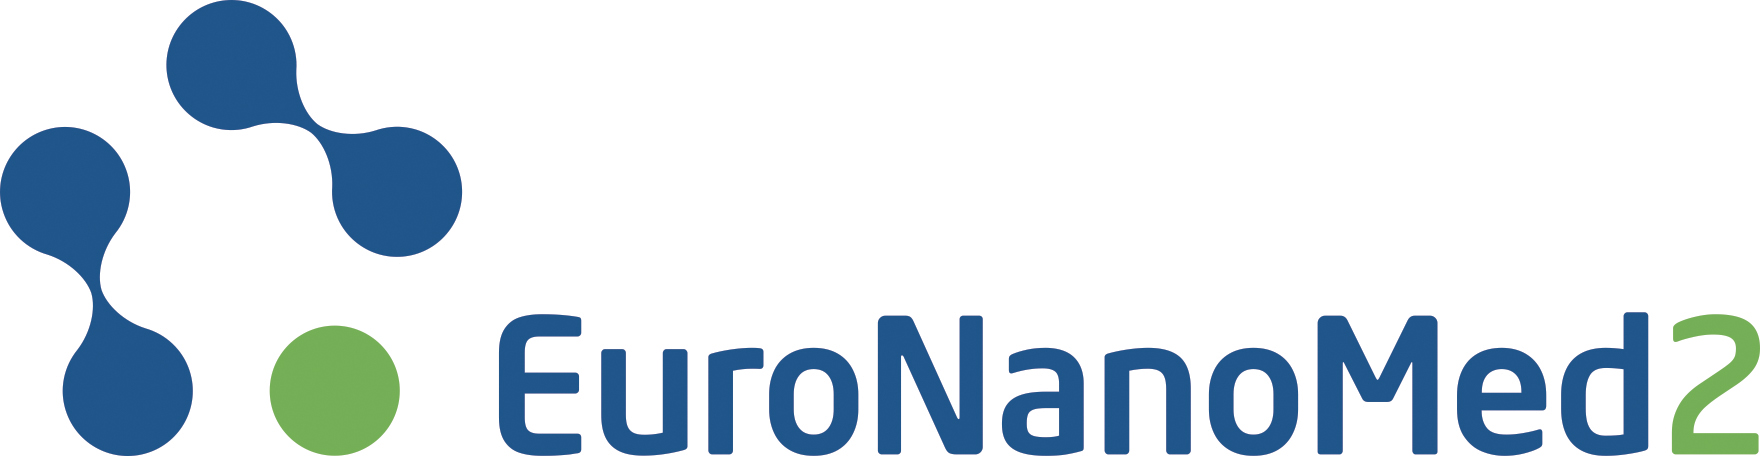 Logo Euronanomed 2